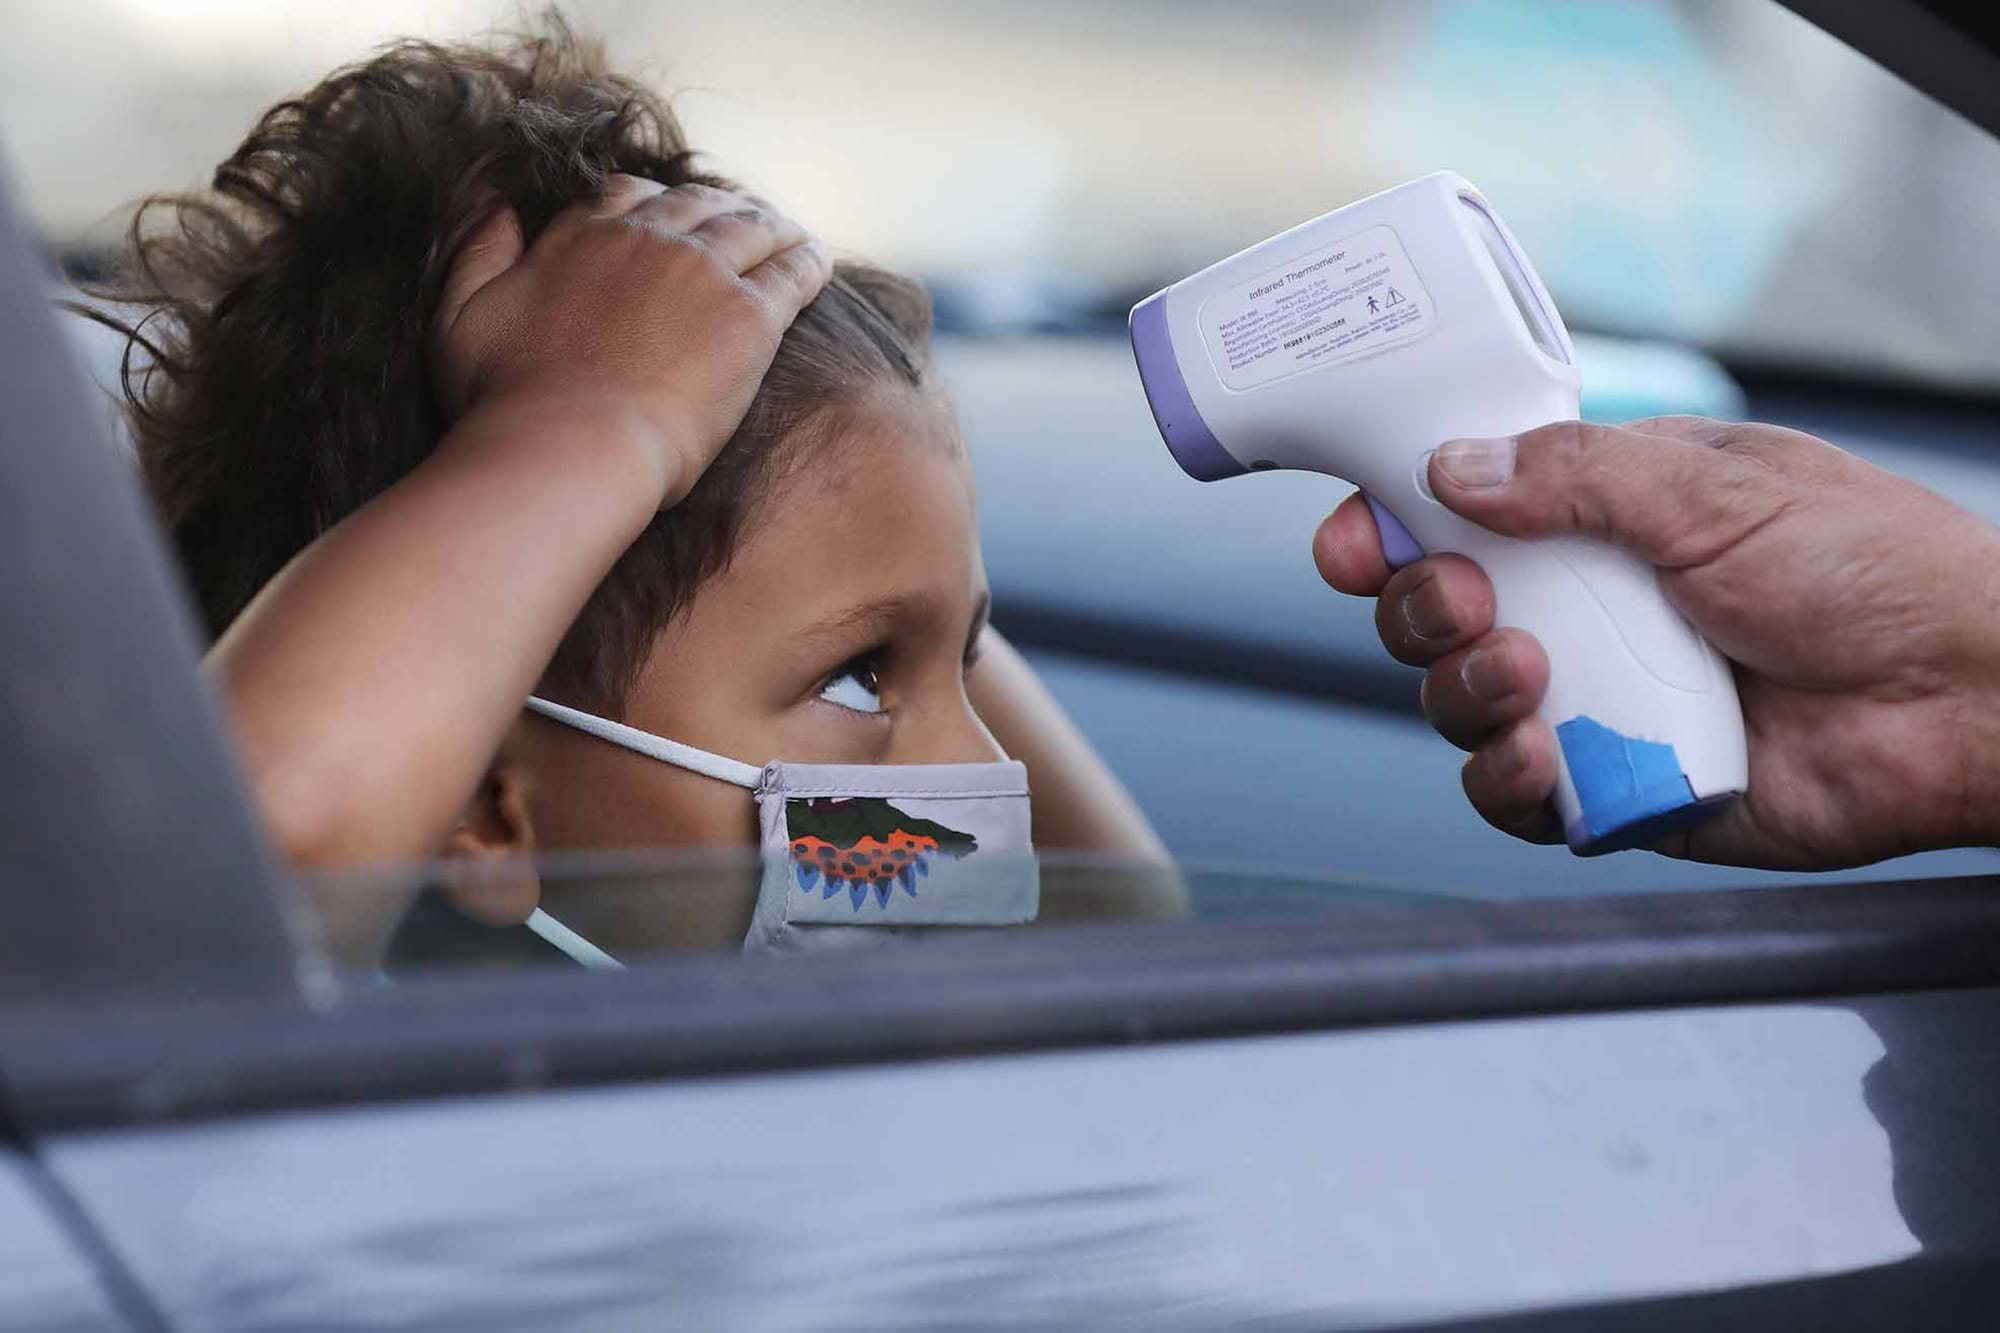 A young student inside a car wearing a medical mask pulls their hair back as a hand with a thermometer is pointed to their head.